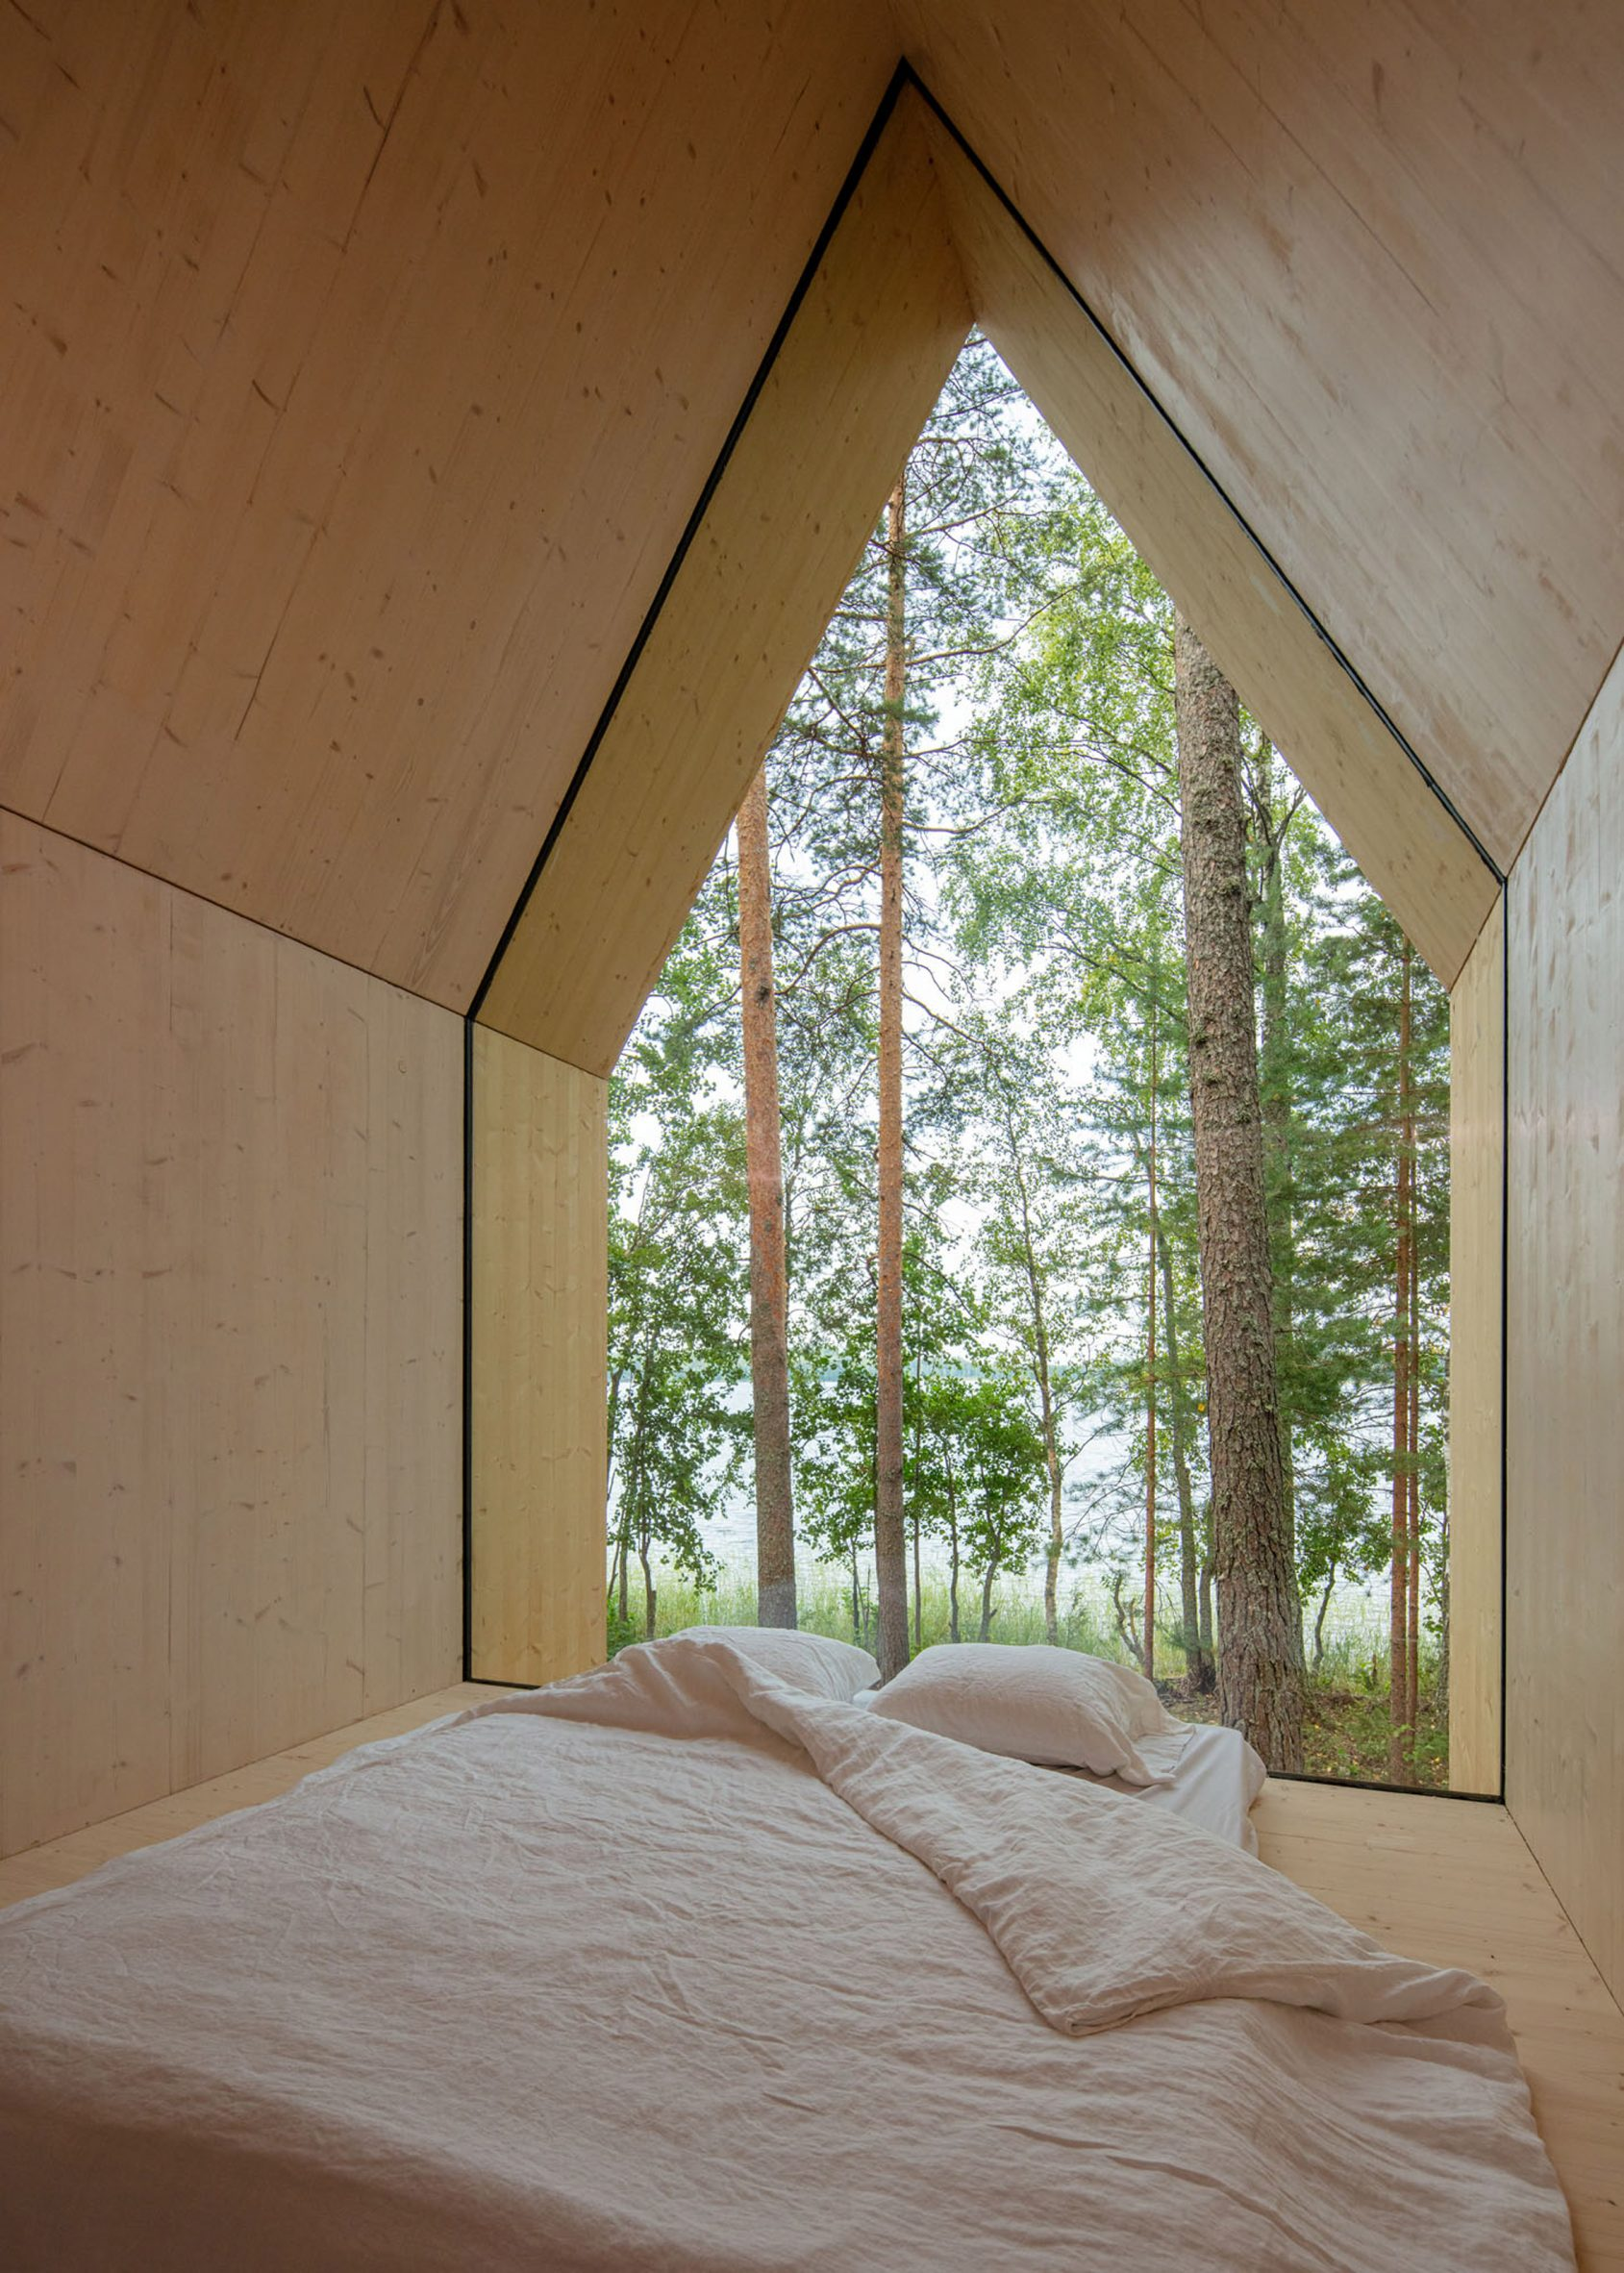 Glazed wall in the cabin bedroom by Ortraum Architects